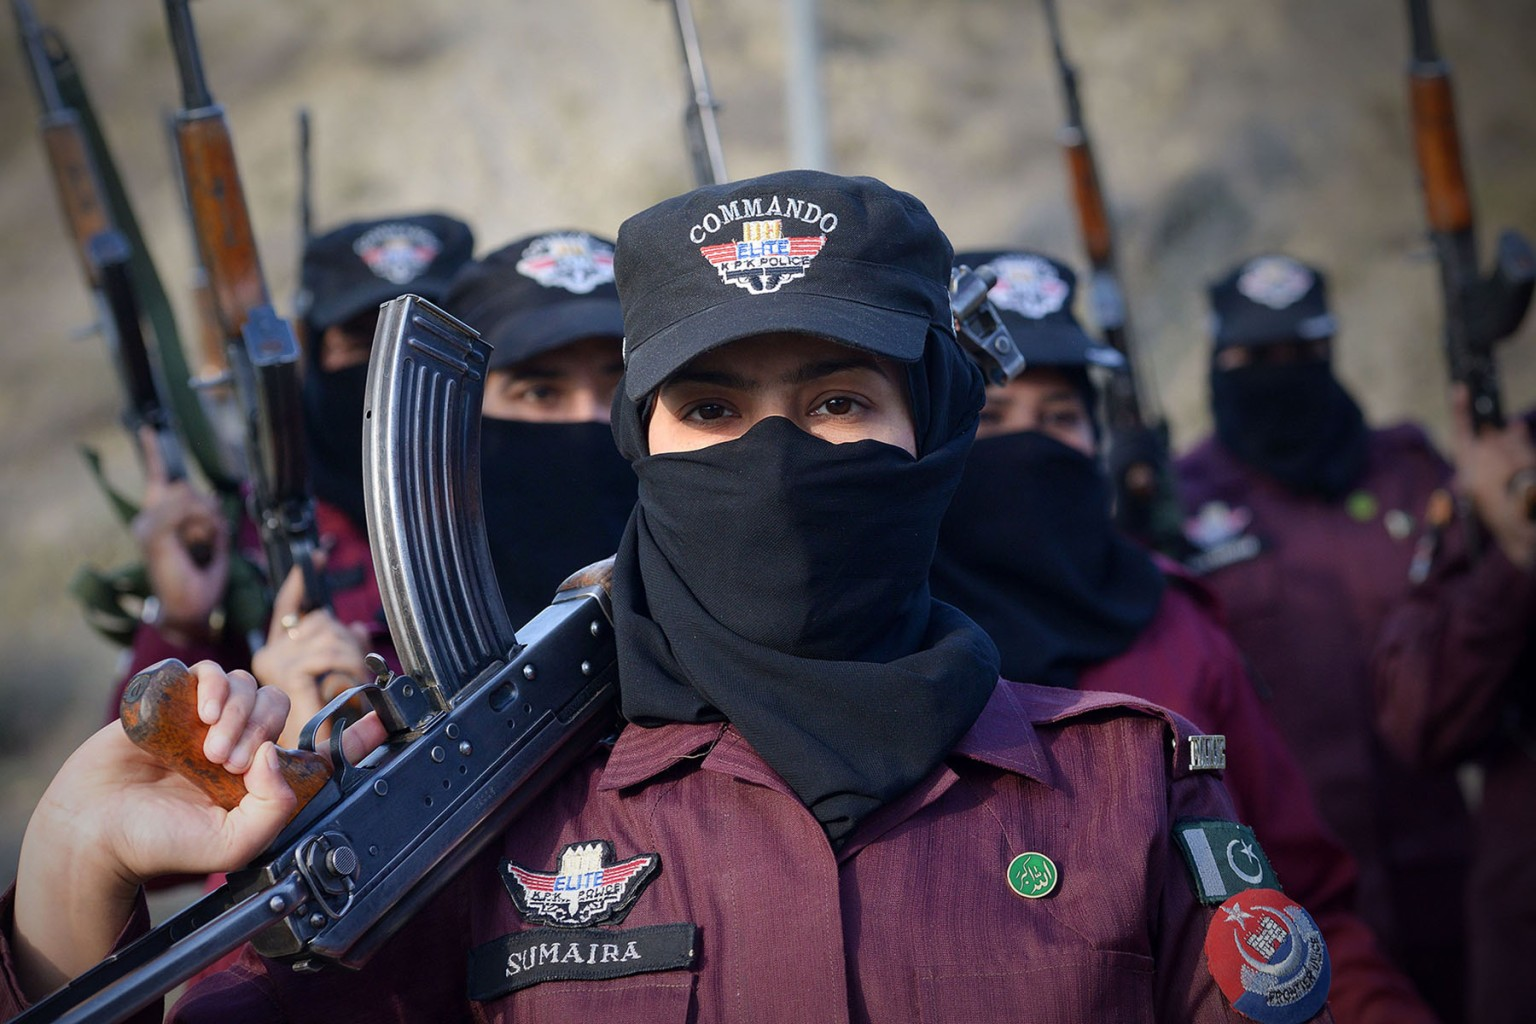 Pakistani police commandos carry assault rifles as they take part in an exercise at a police training centre in Nowshera on March 7. ABDUL MAJEED/AFP/Getty Images